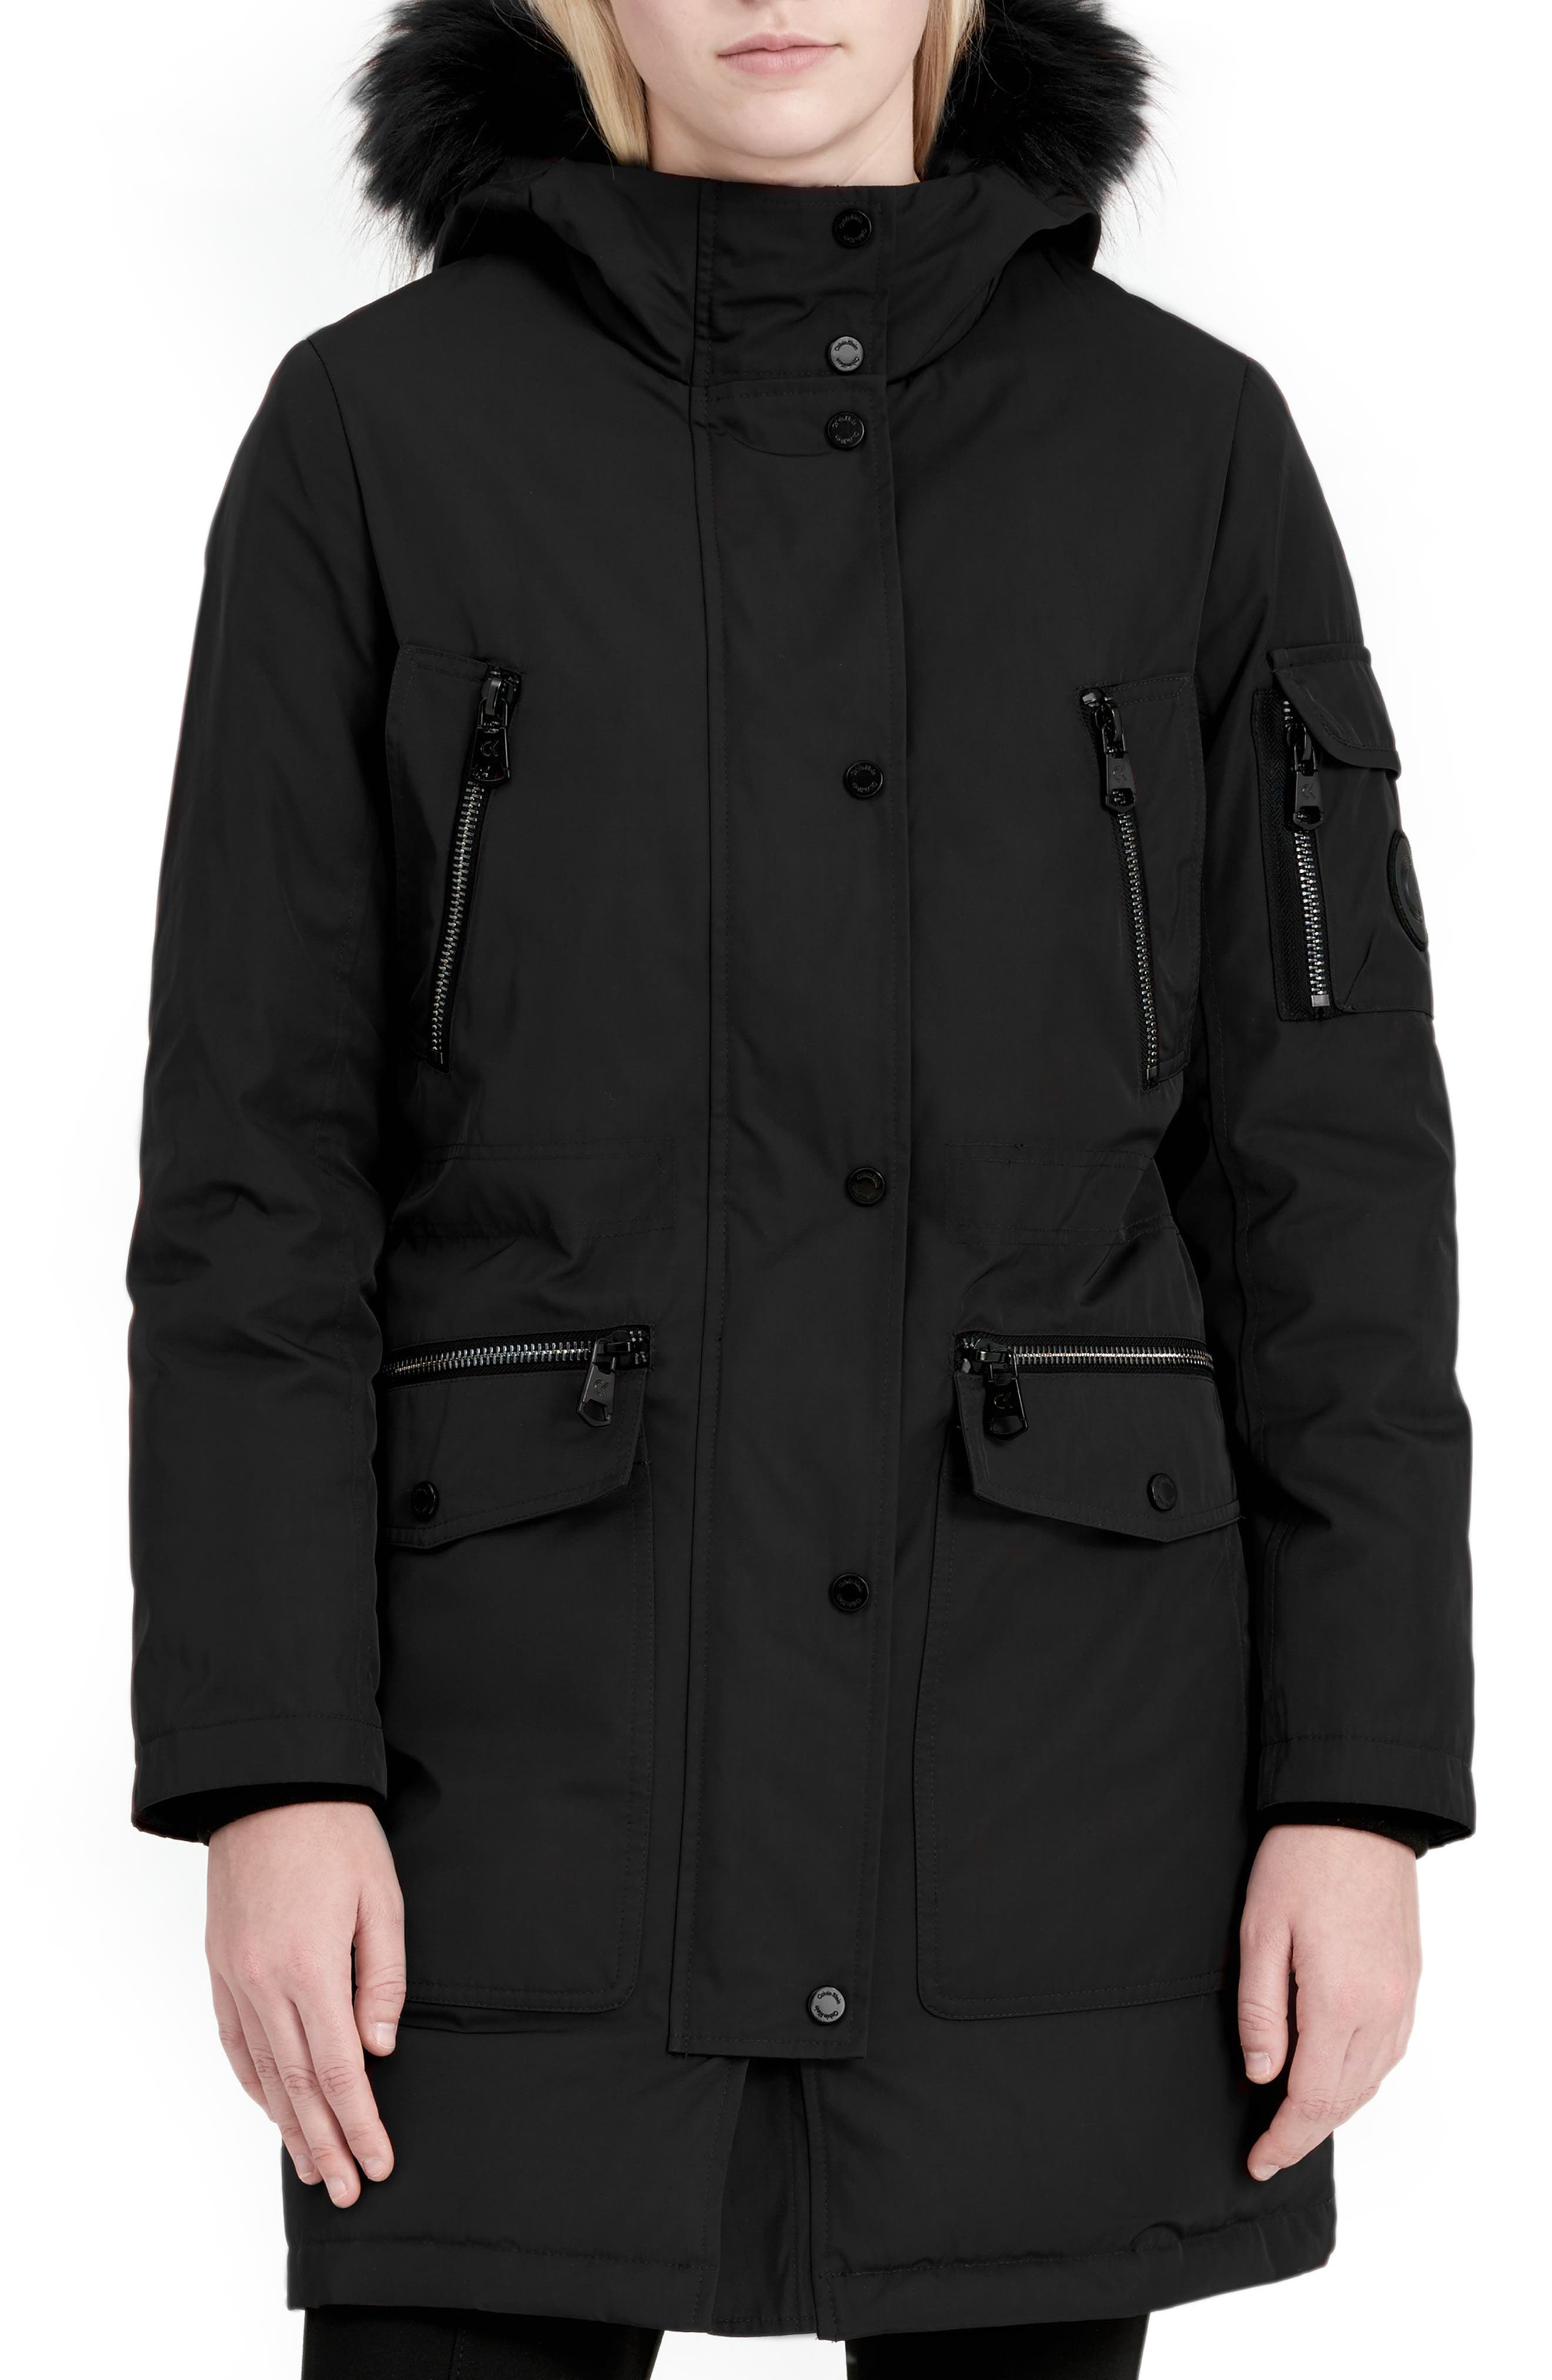 Expedition Hooded Down Parka with Faux Fur Trim,                             Main thumbnail 1, color,                             001